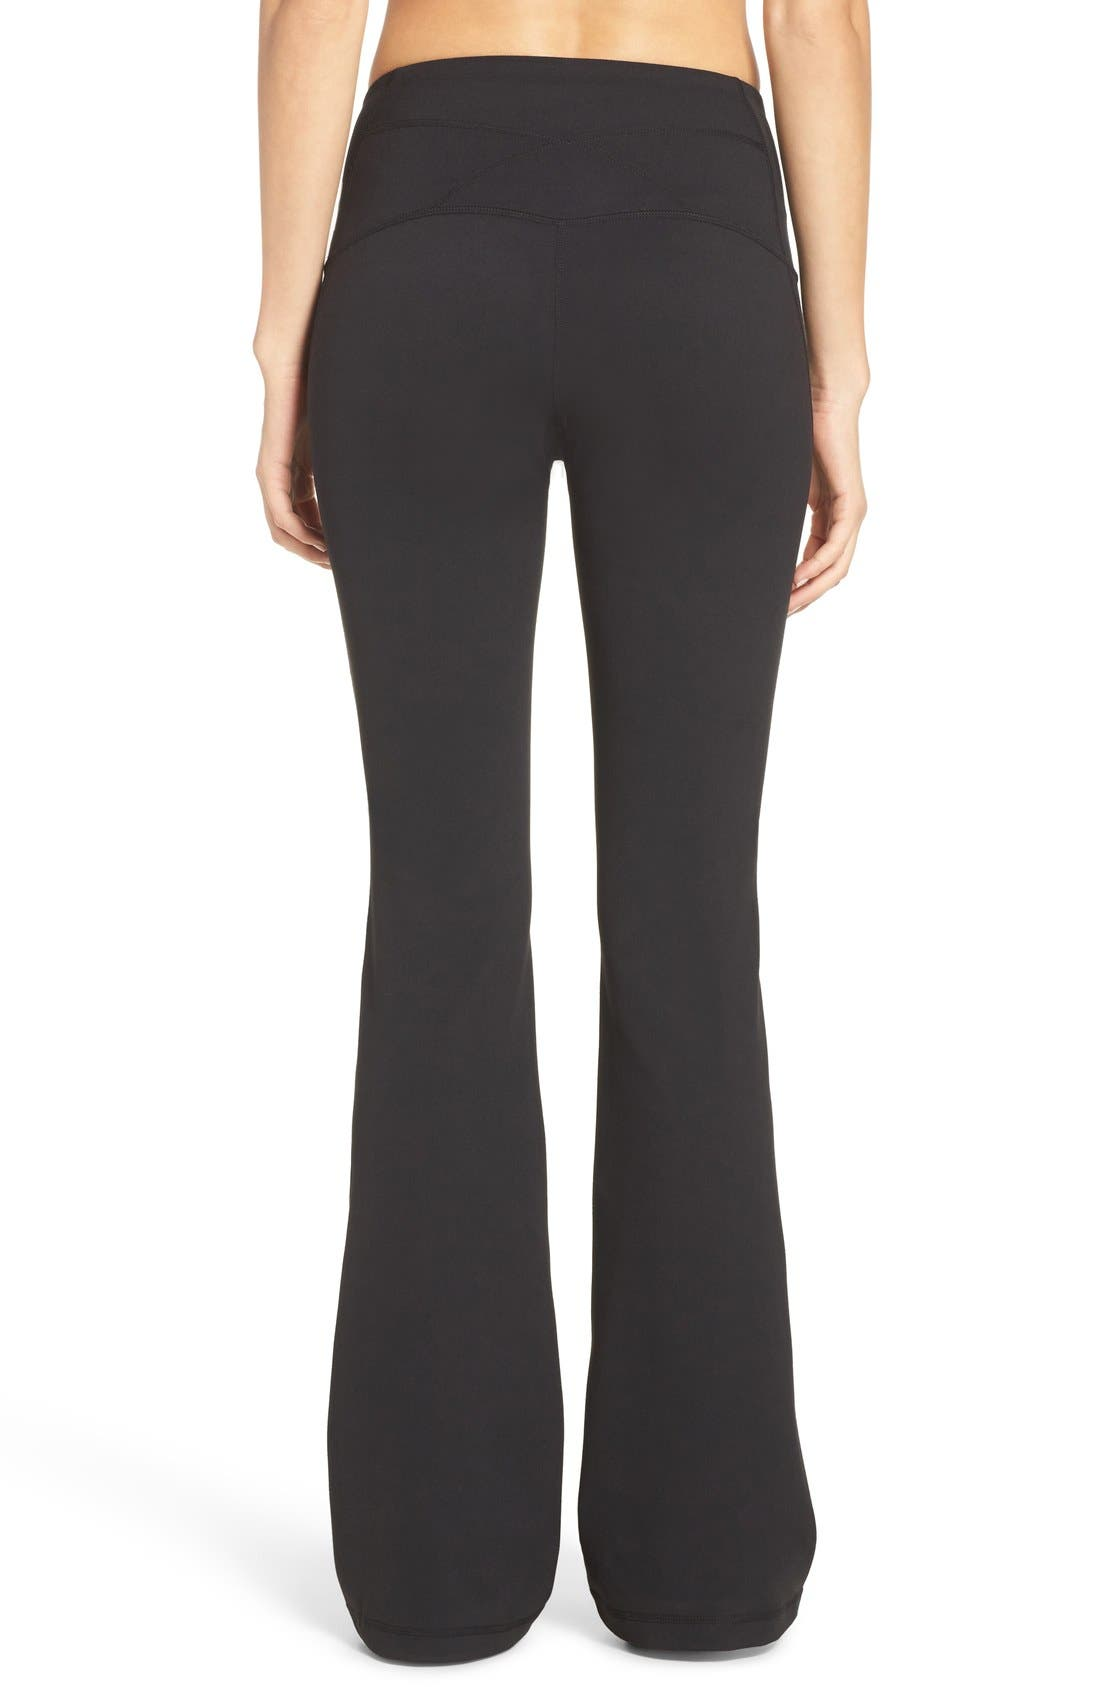 Alternate Image 2  - Zella 'Barely Flare Booty' High Waist Pants